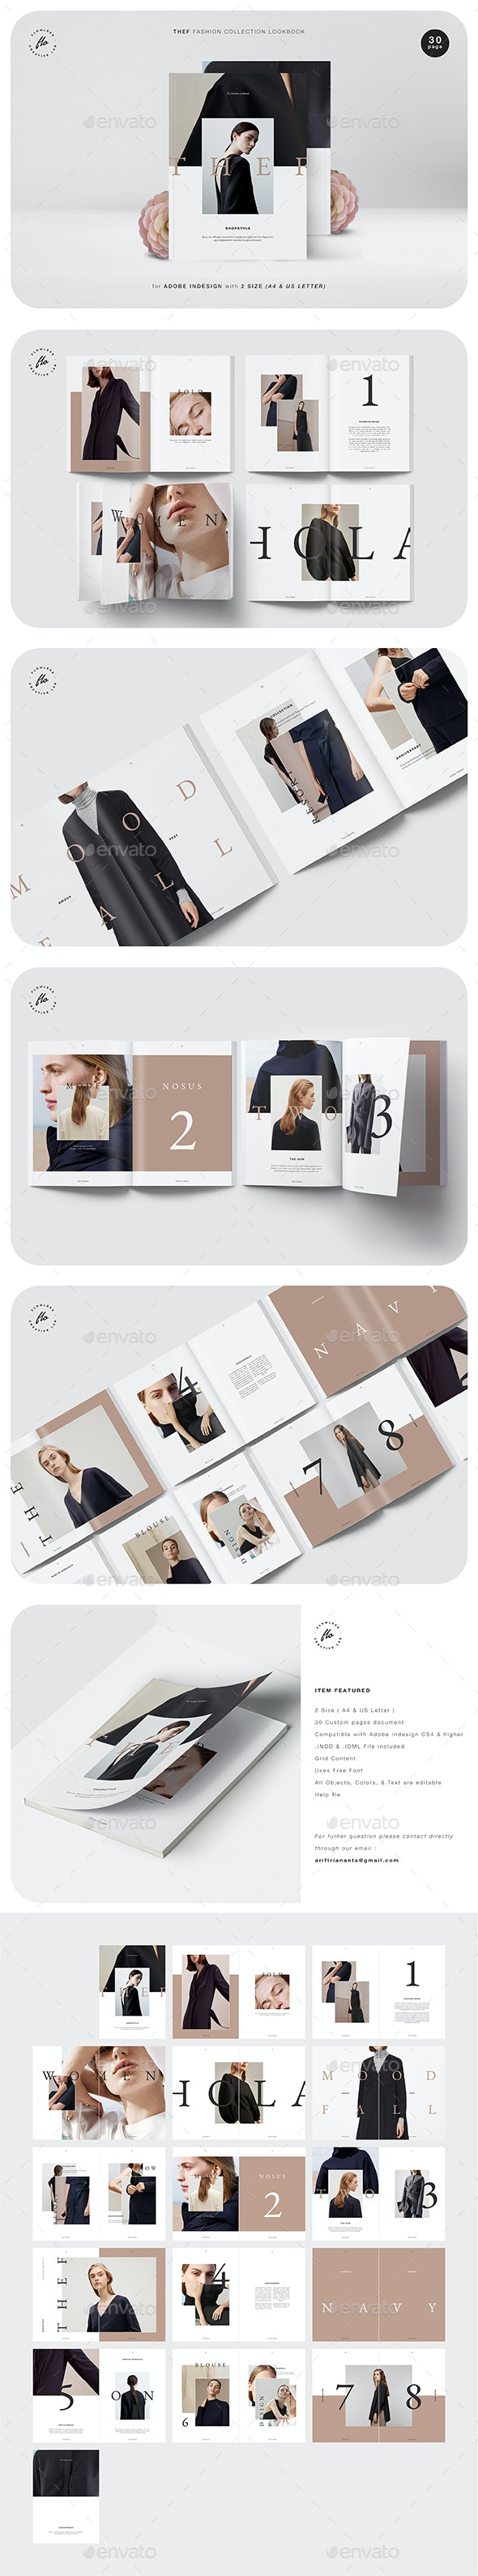 Thef Fashion Collection Lookbook - Magazines Print Templates